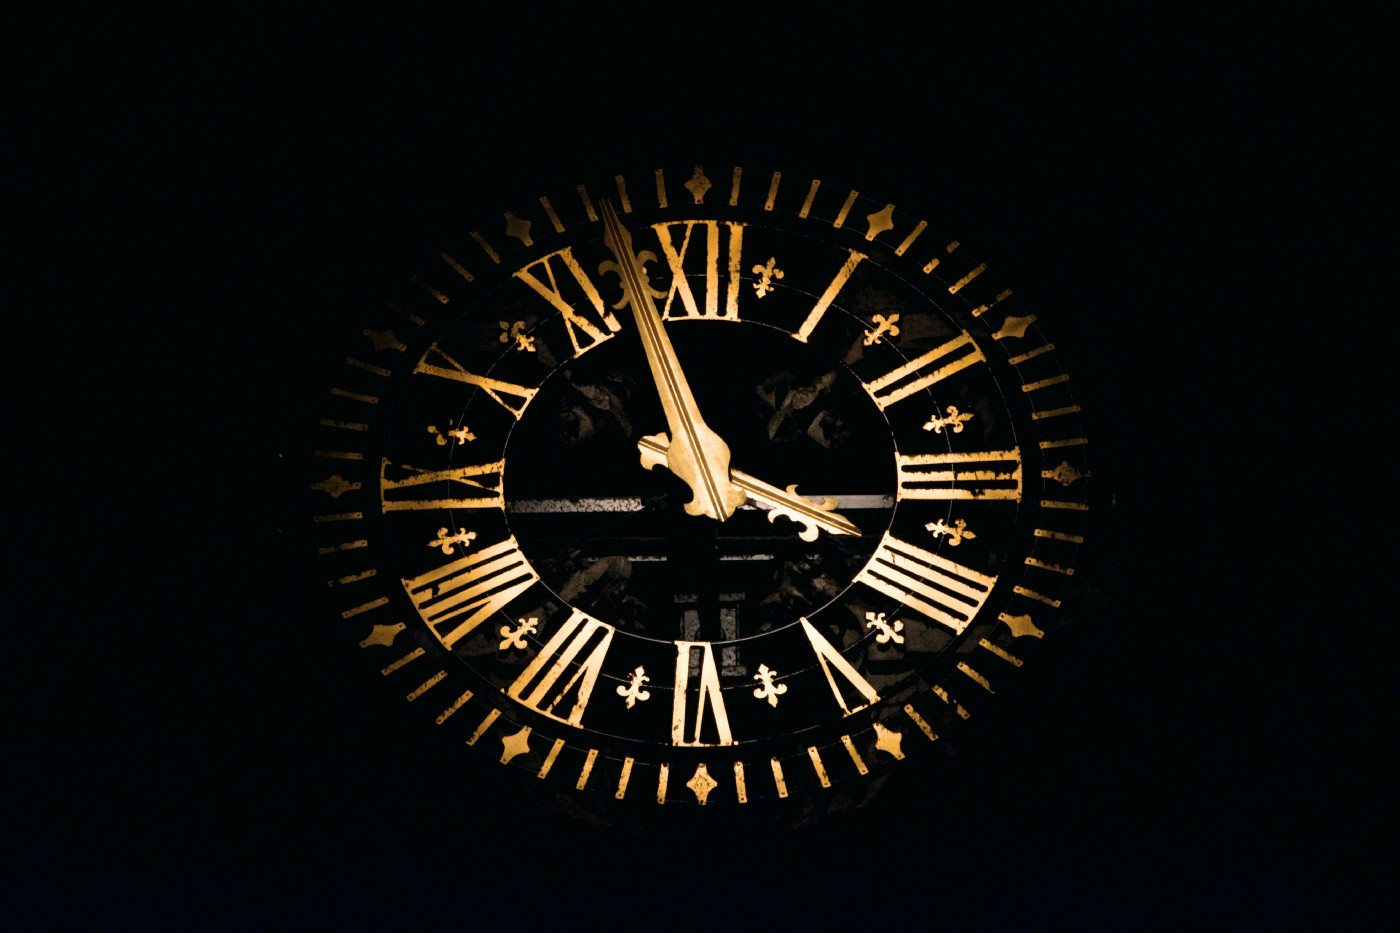 Clock displaying Roman numerals